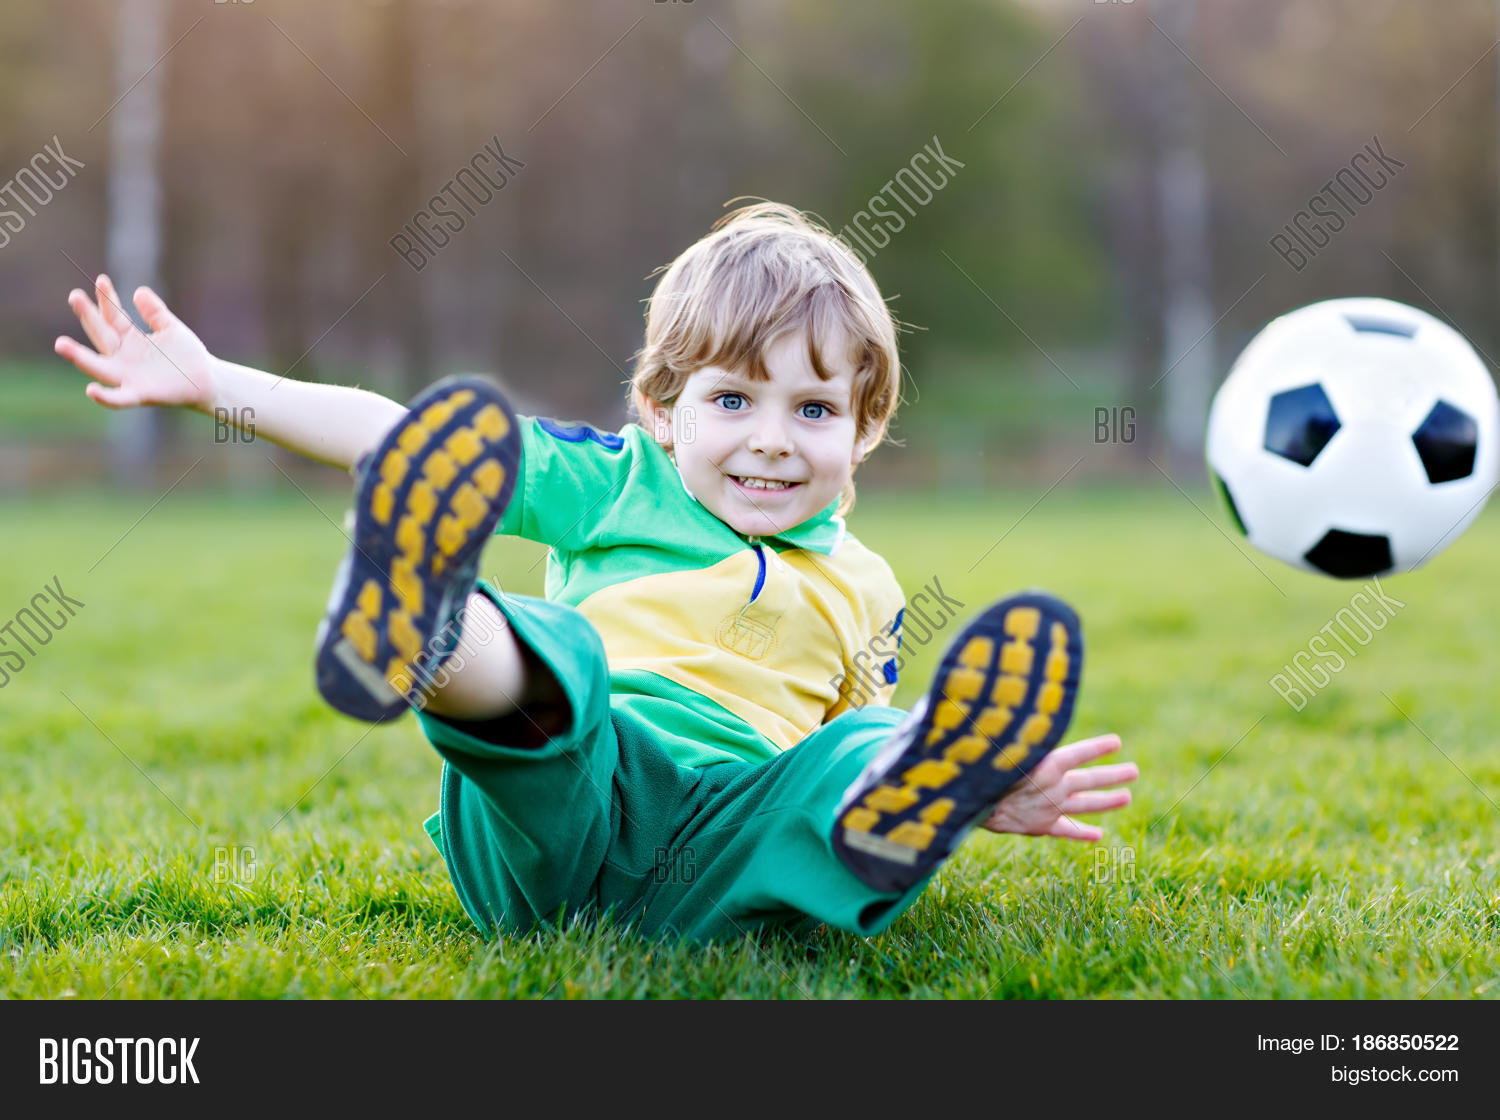 little cute kid boy 4 image & photo (free trial) | bigstock